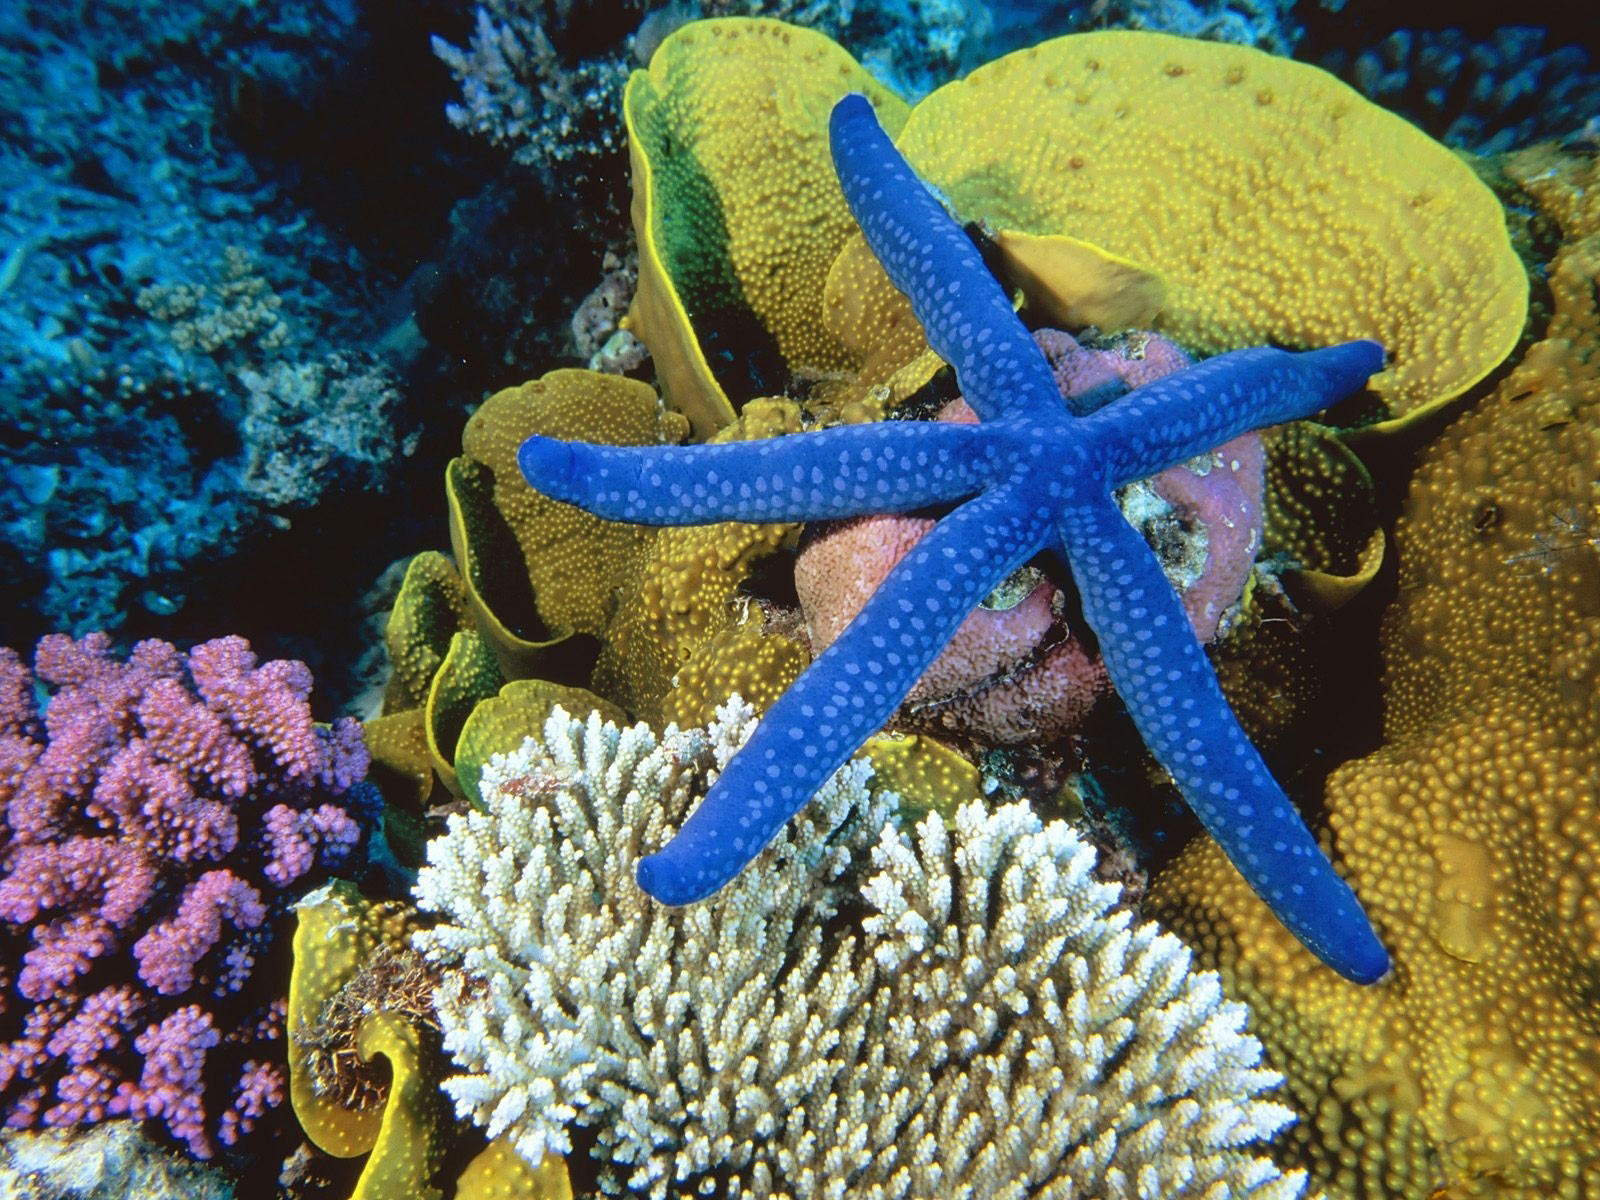 http://4.bp.blogspot.com/-pS3wgMTEPYA/TZXA3yidNgI/AAAAAAAAB5w/qOjrtViJR60/s1600/blue-starfish---coral-reef-life-1600-x-1200-animal-wallpaper-desktop.jpg